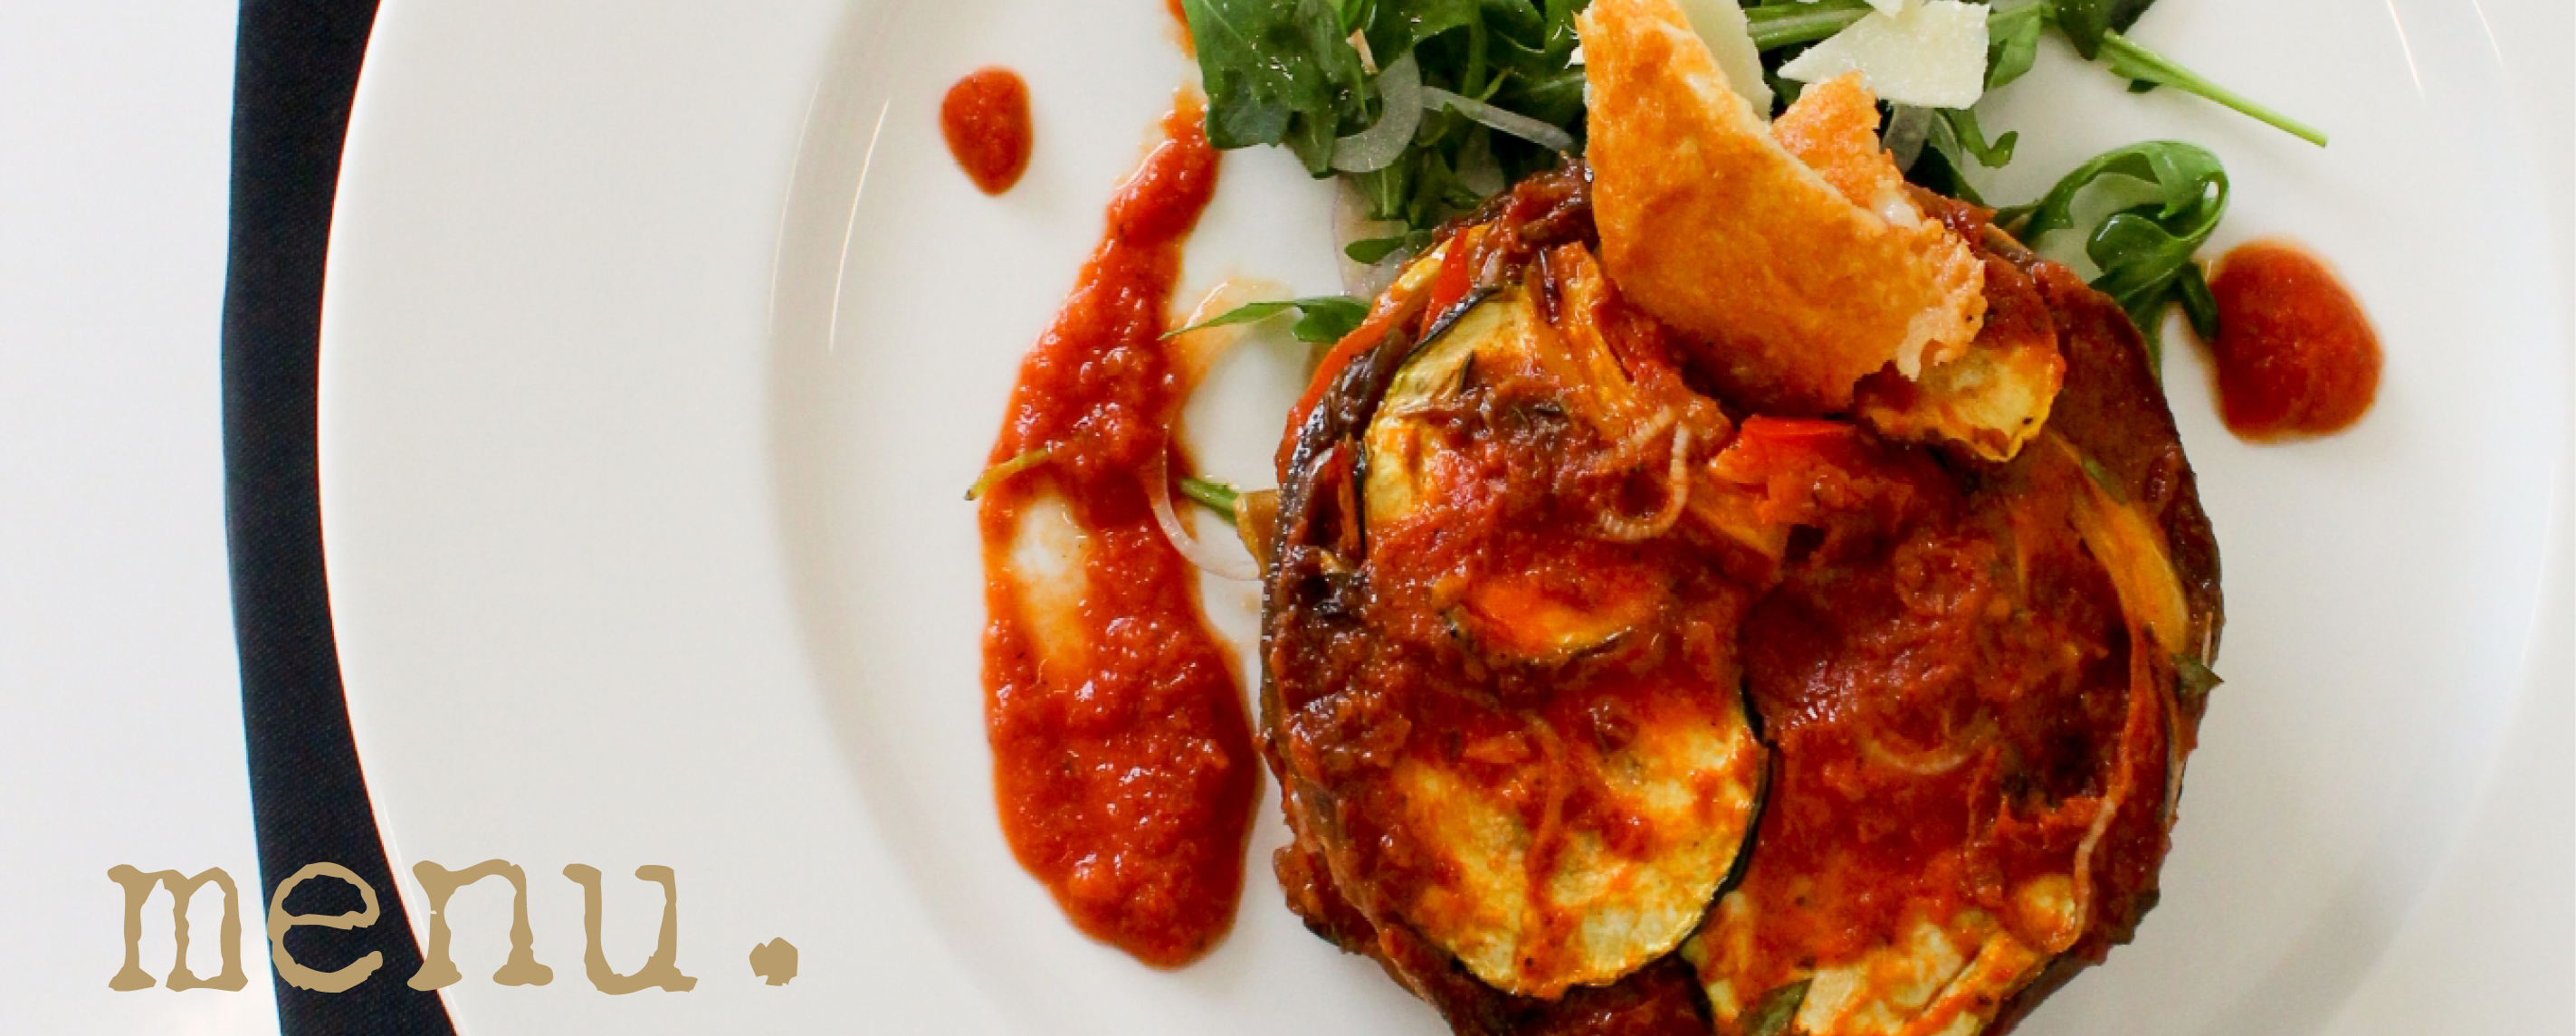 Ratatouille - A delicious blend of seasonal vegetables baked in a zesty arrabbiata sauce. Served over garden fresh arugula tossed in a lemon vinaigrette topped with a parmesan tuile